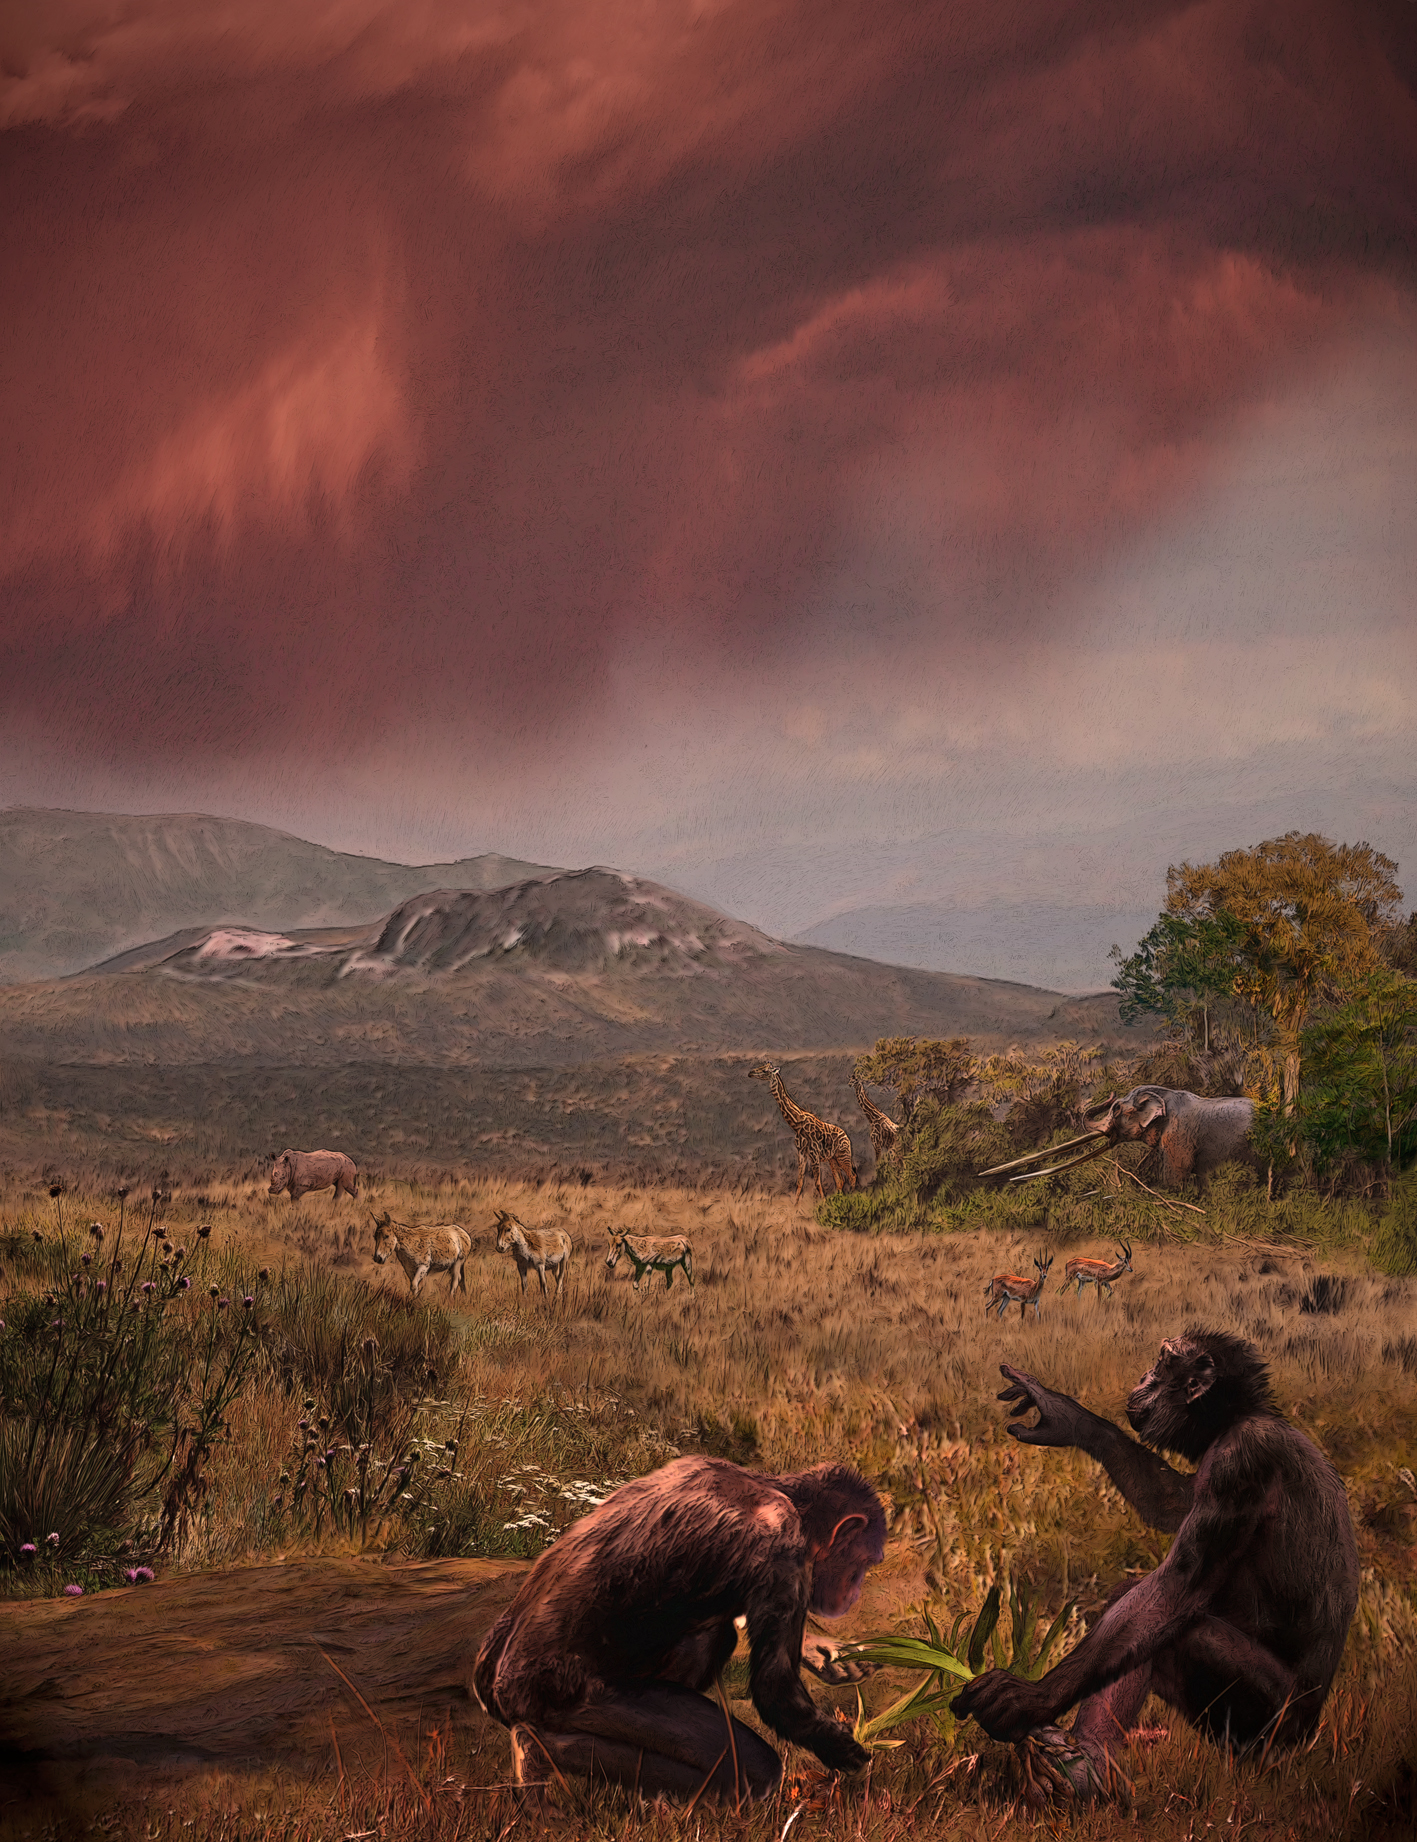 Humans originated in Europe, not Africa, claims new study